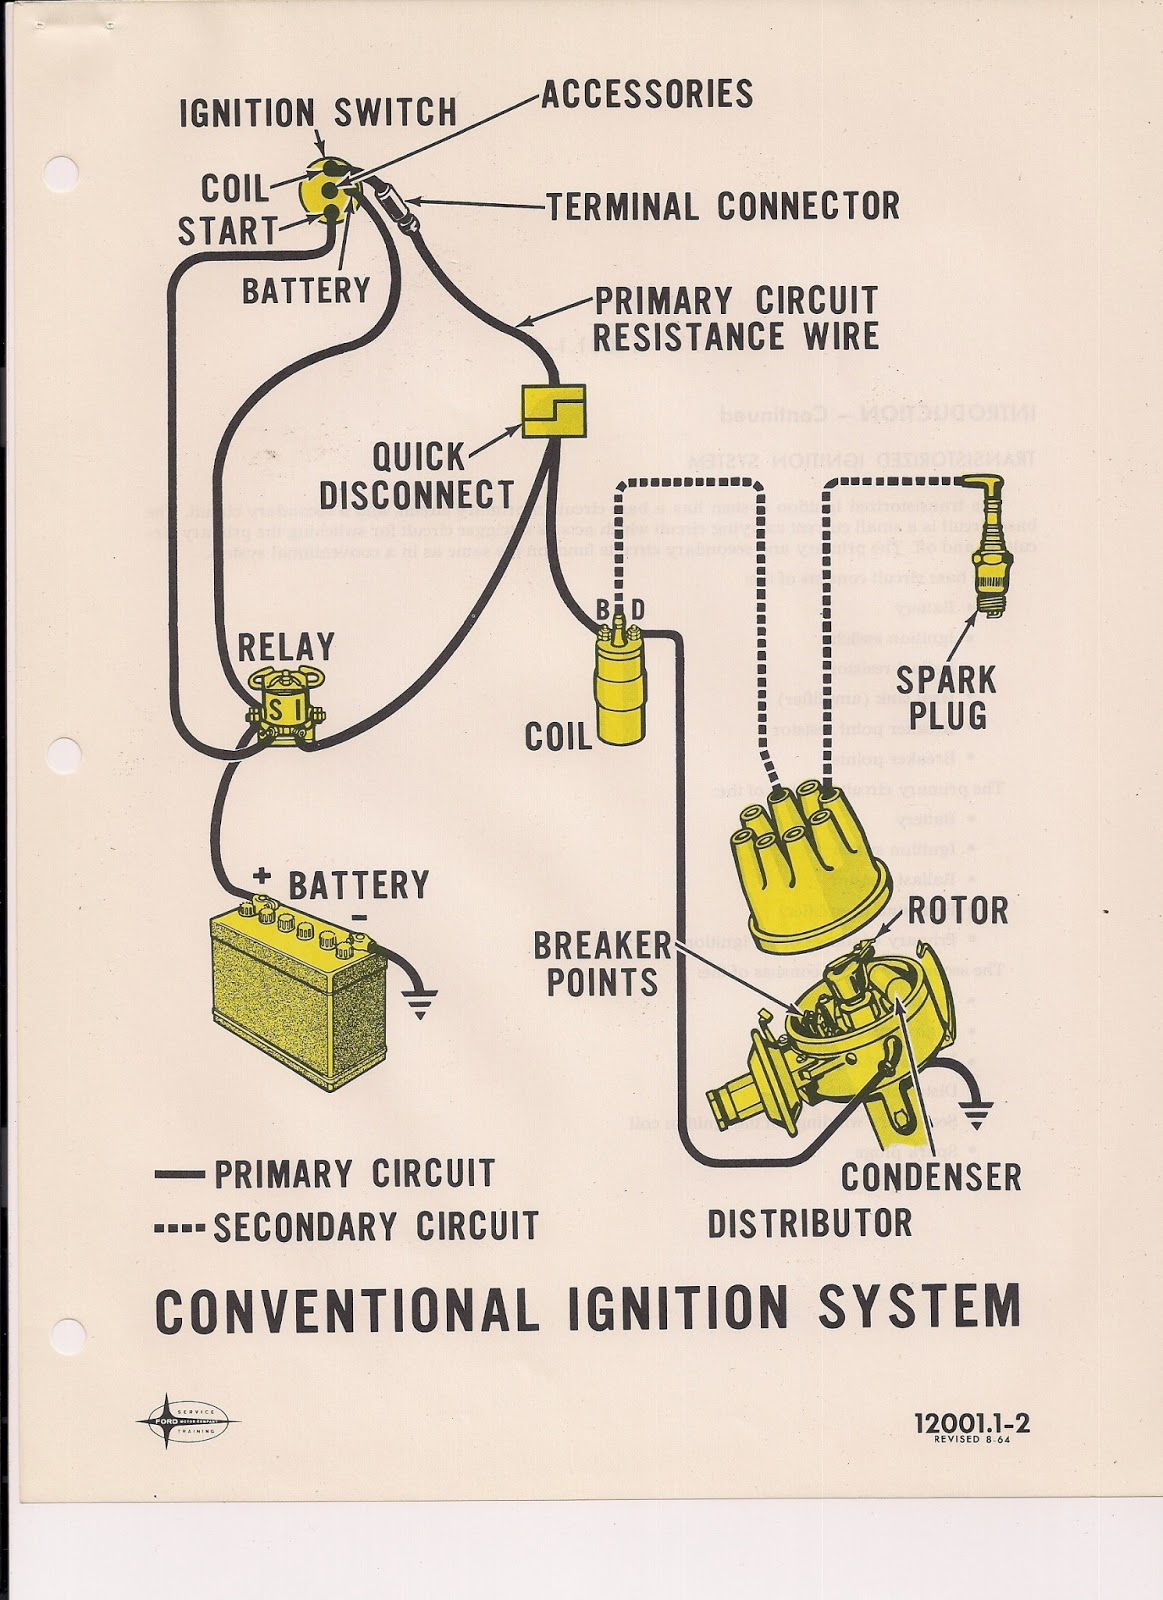 Ignition+1 the care and feeding of ponies mustang ignition system 1965 and 1966 1967 mustang ignition wiring diagram at gsmx.co